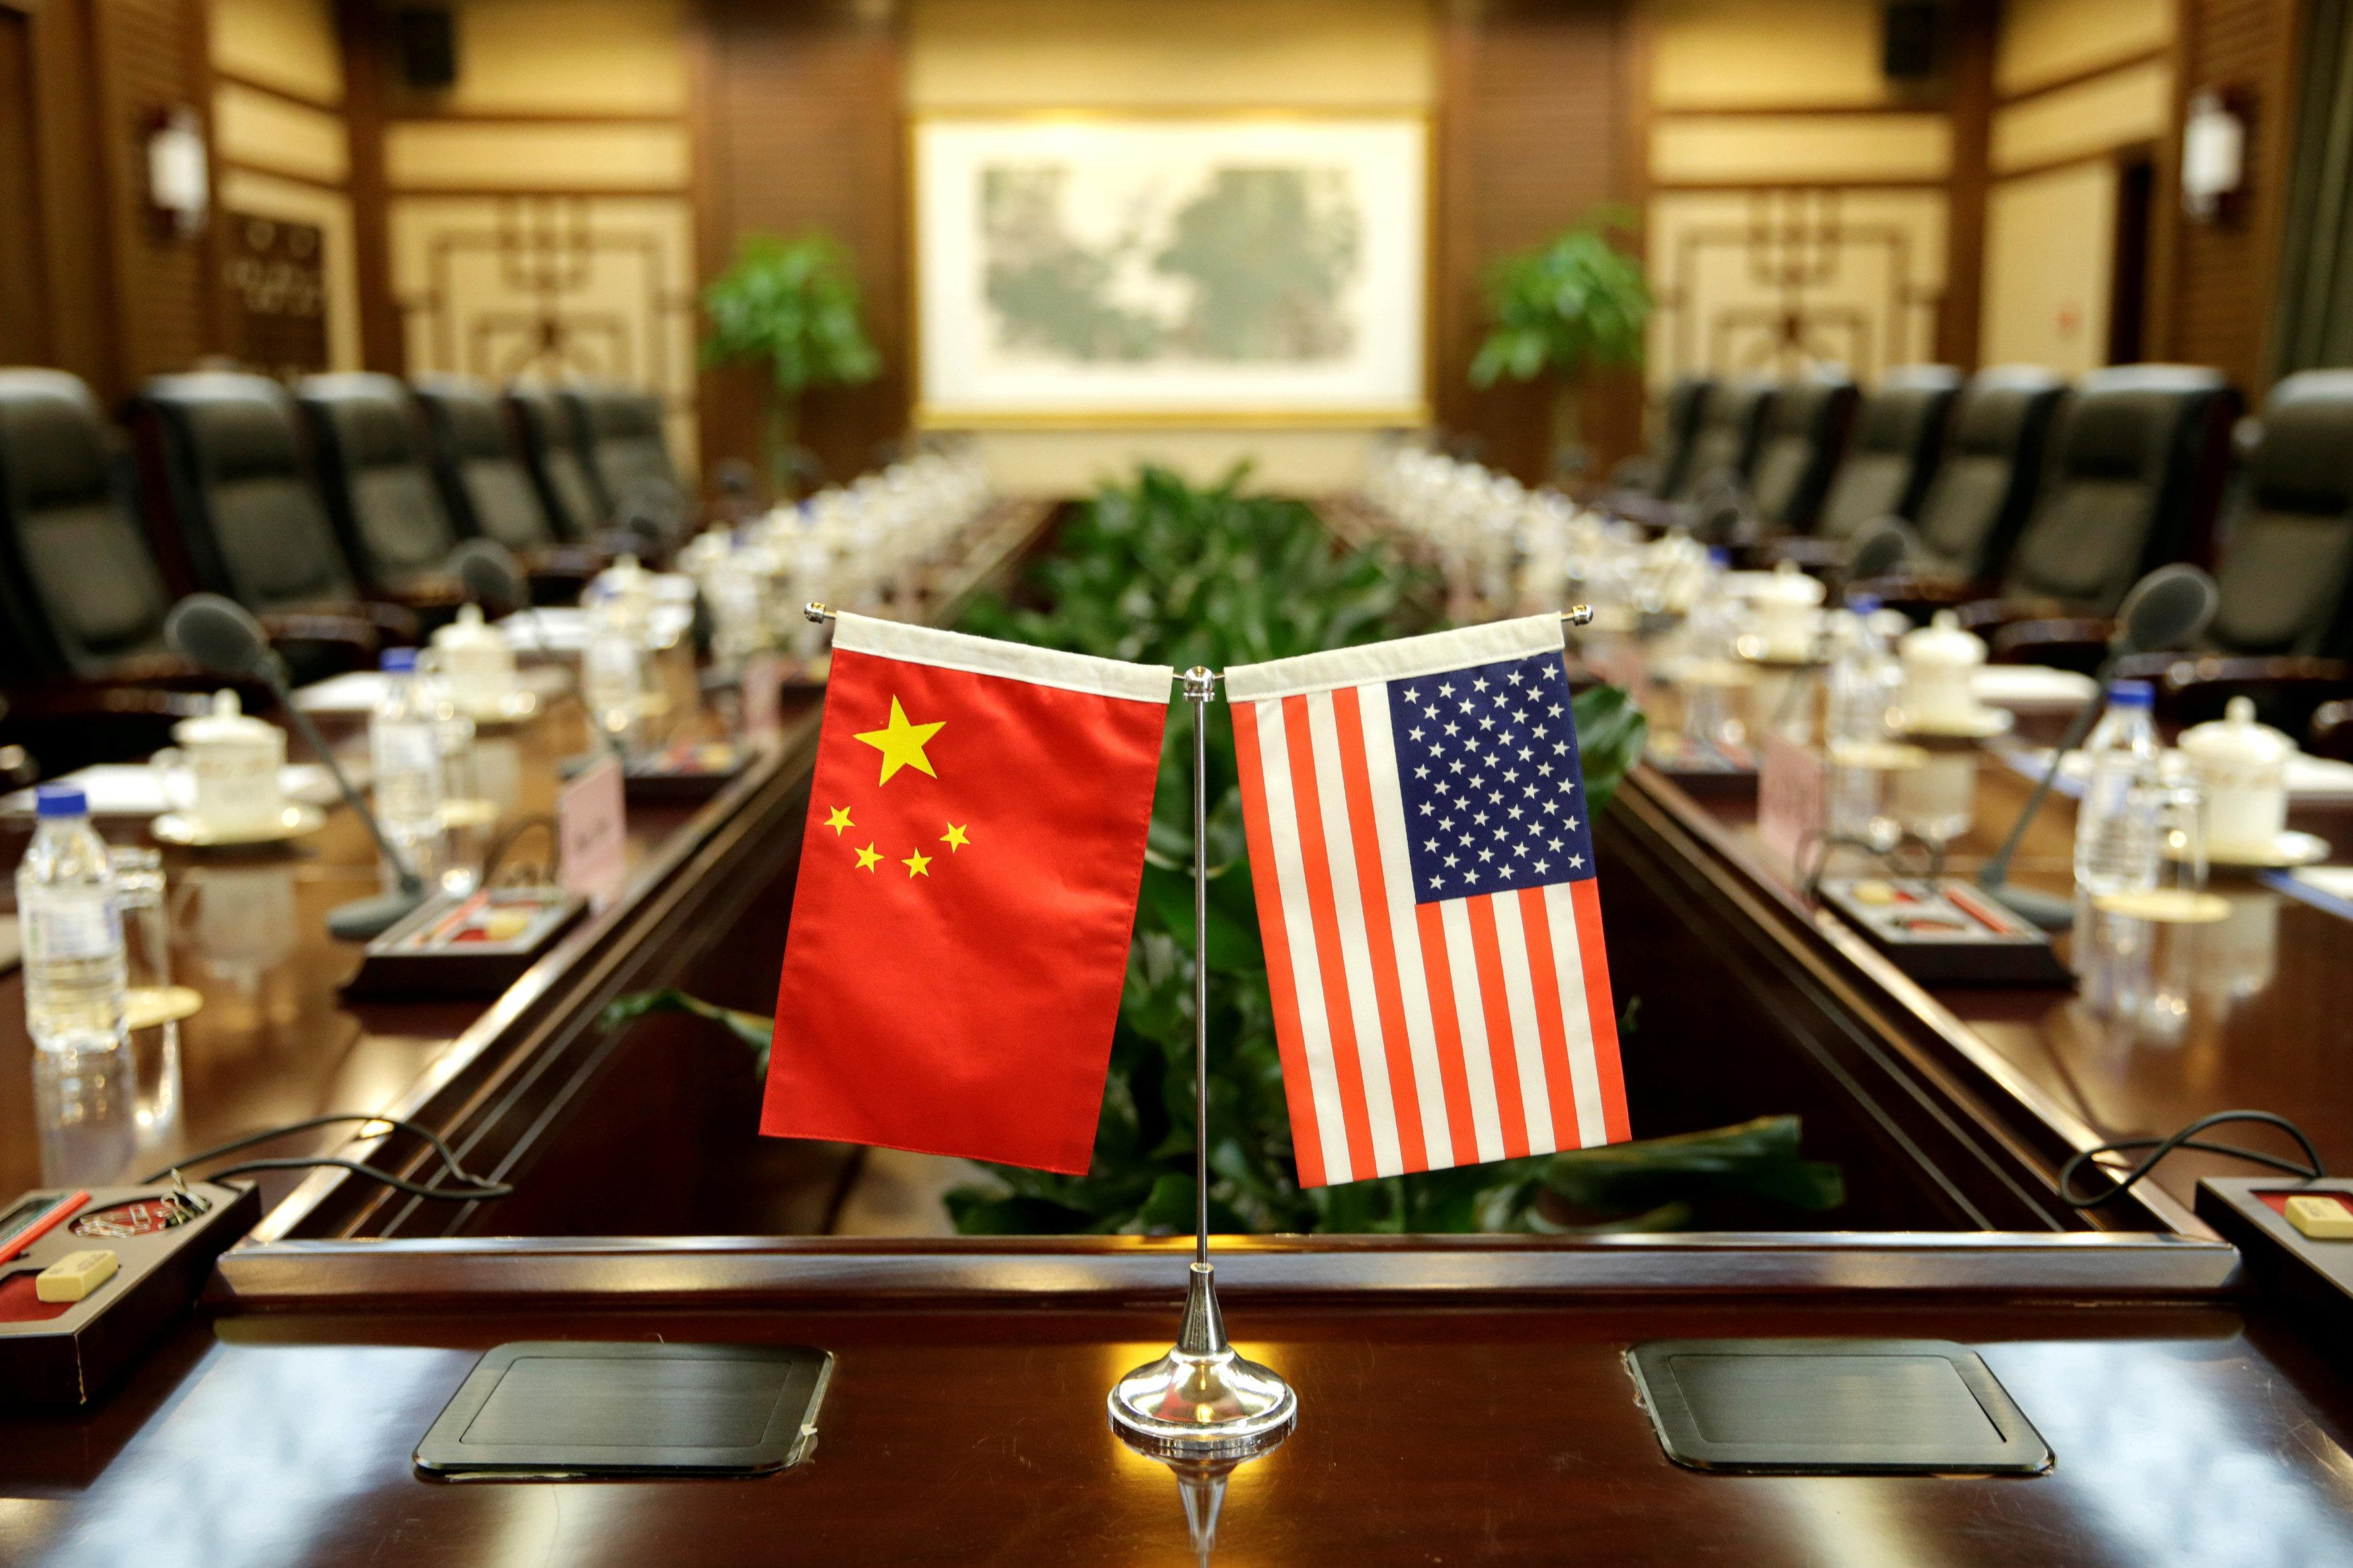 Flags of U.S. and China are placed for a meeting between Secretary of Agriculture Sonny Perdue and China's Minister of Agriculture Han Changfu at the Ministry of Agriculture in Beijing, China June 30, 2017. Jason Lee